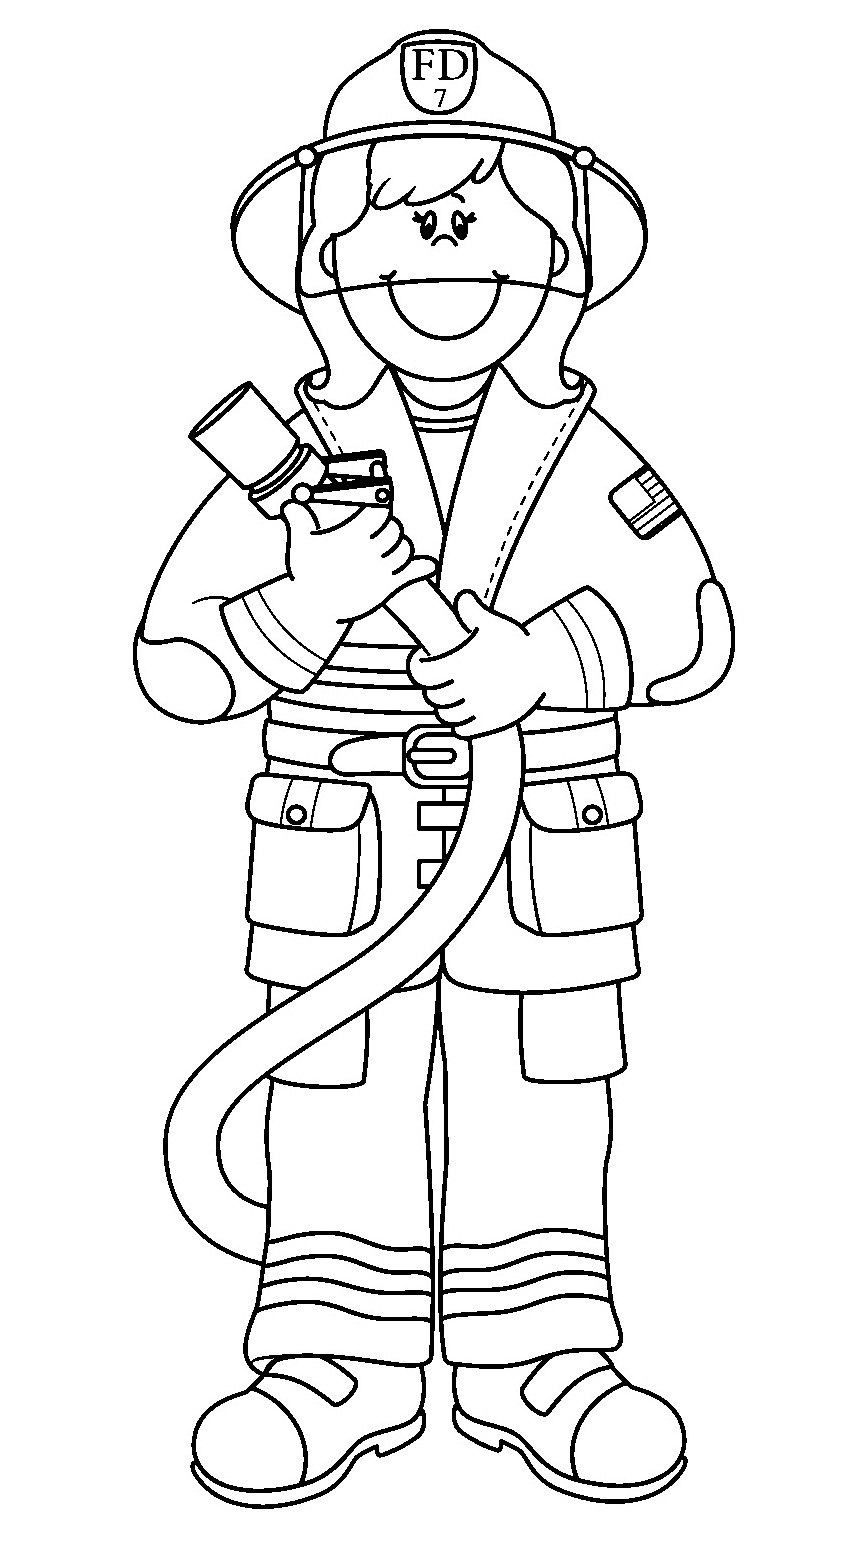 852x1544 Fresh Fireman Coloring Pages For Boys Collection Free Coloring Pages